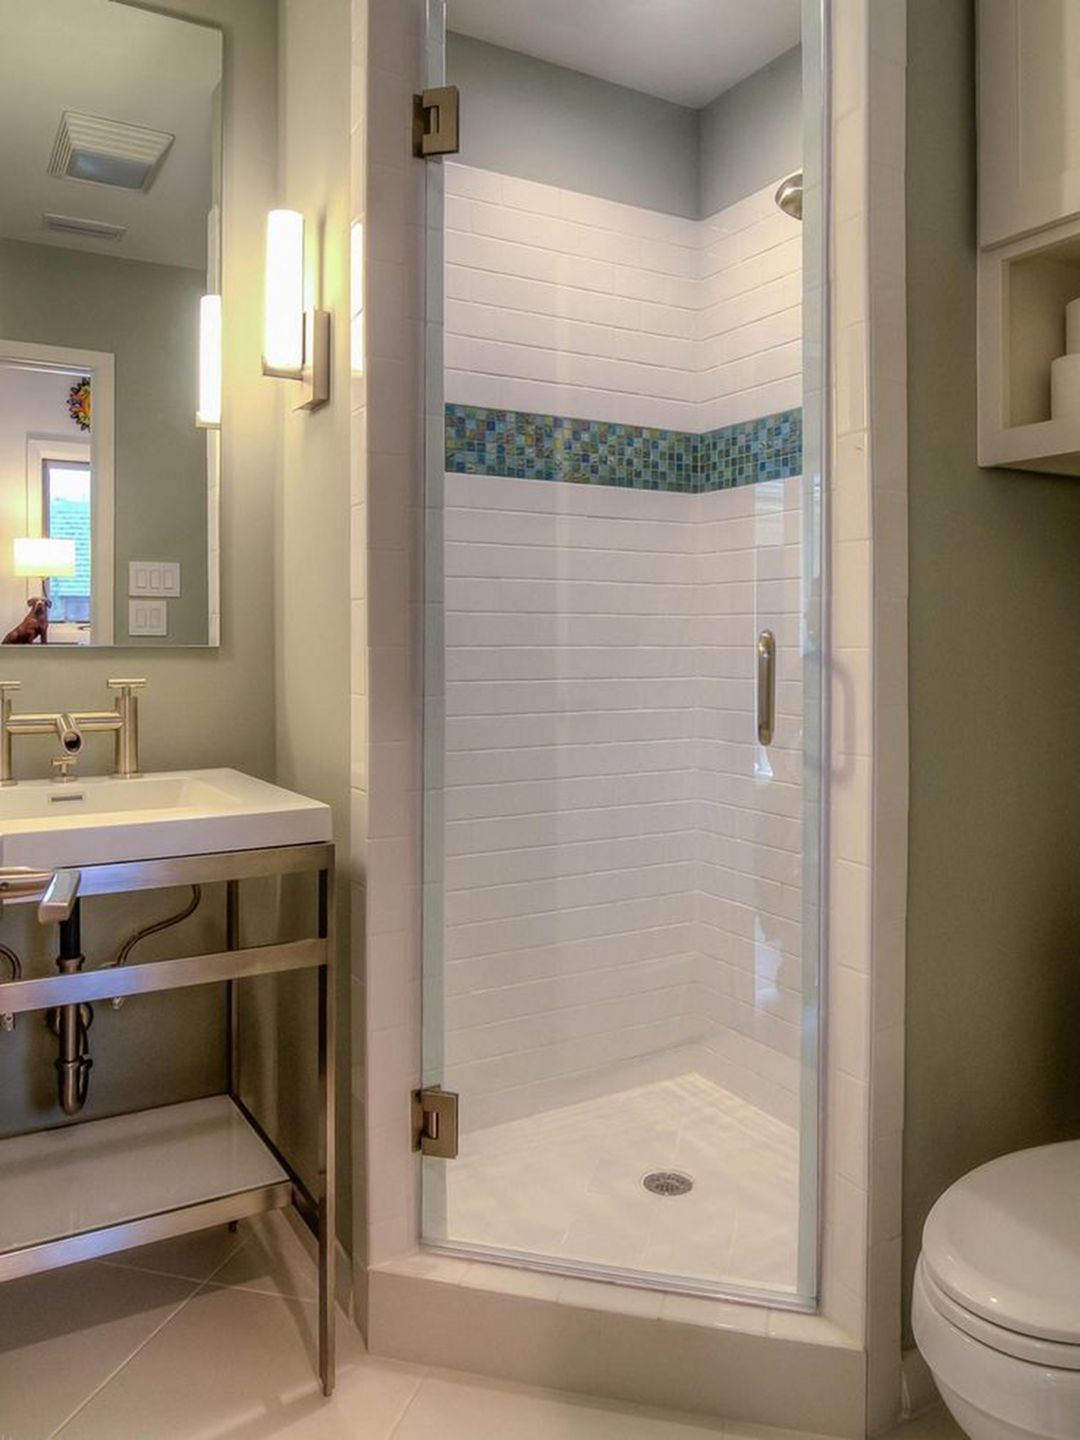 Marvelous 25 Best Shower Stalls For Small Bathroom On A Budget Http Goodsgn Com Ba Small Bathroom Remodel Small Bathroom Makeover Small Bathroom Inspiration